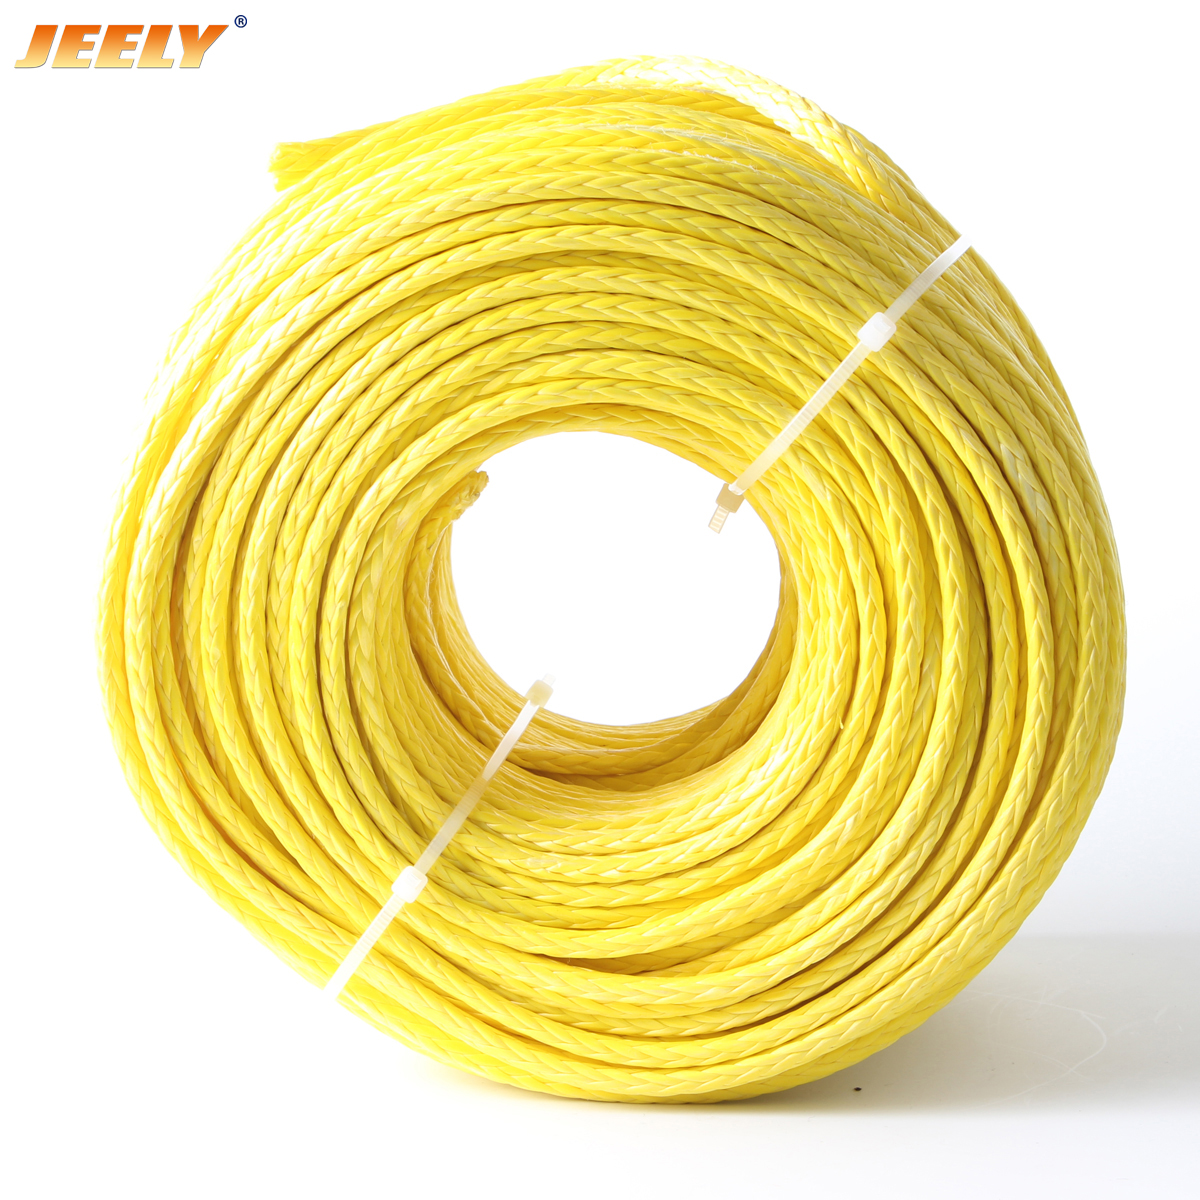 Uhmwpe hollow braid 10mm 12 strands marine rope